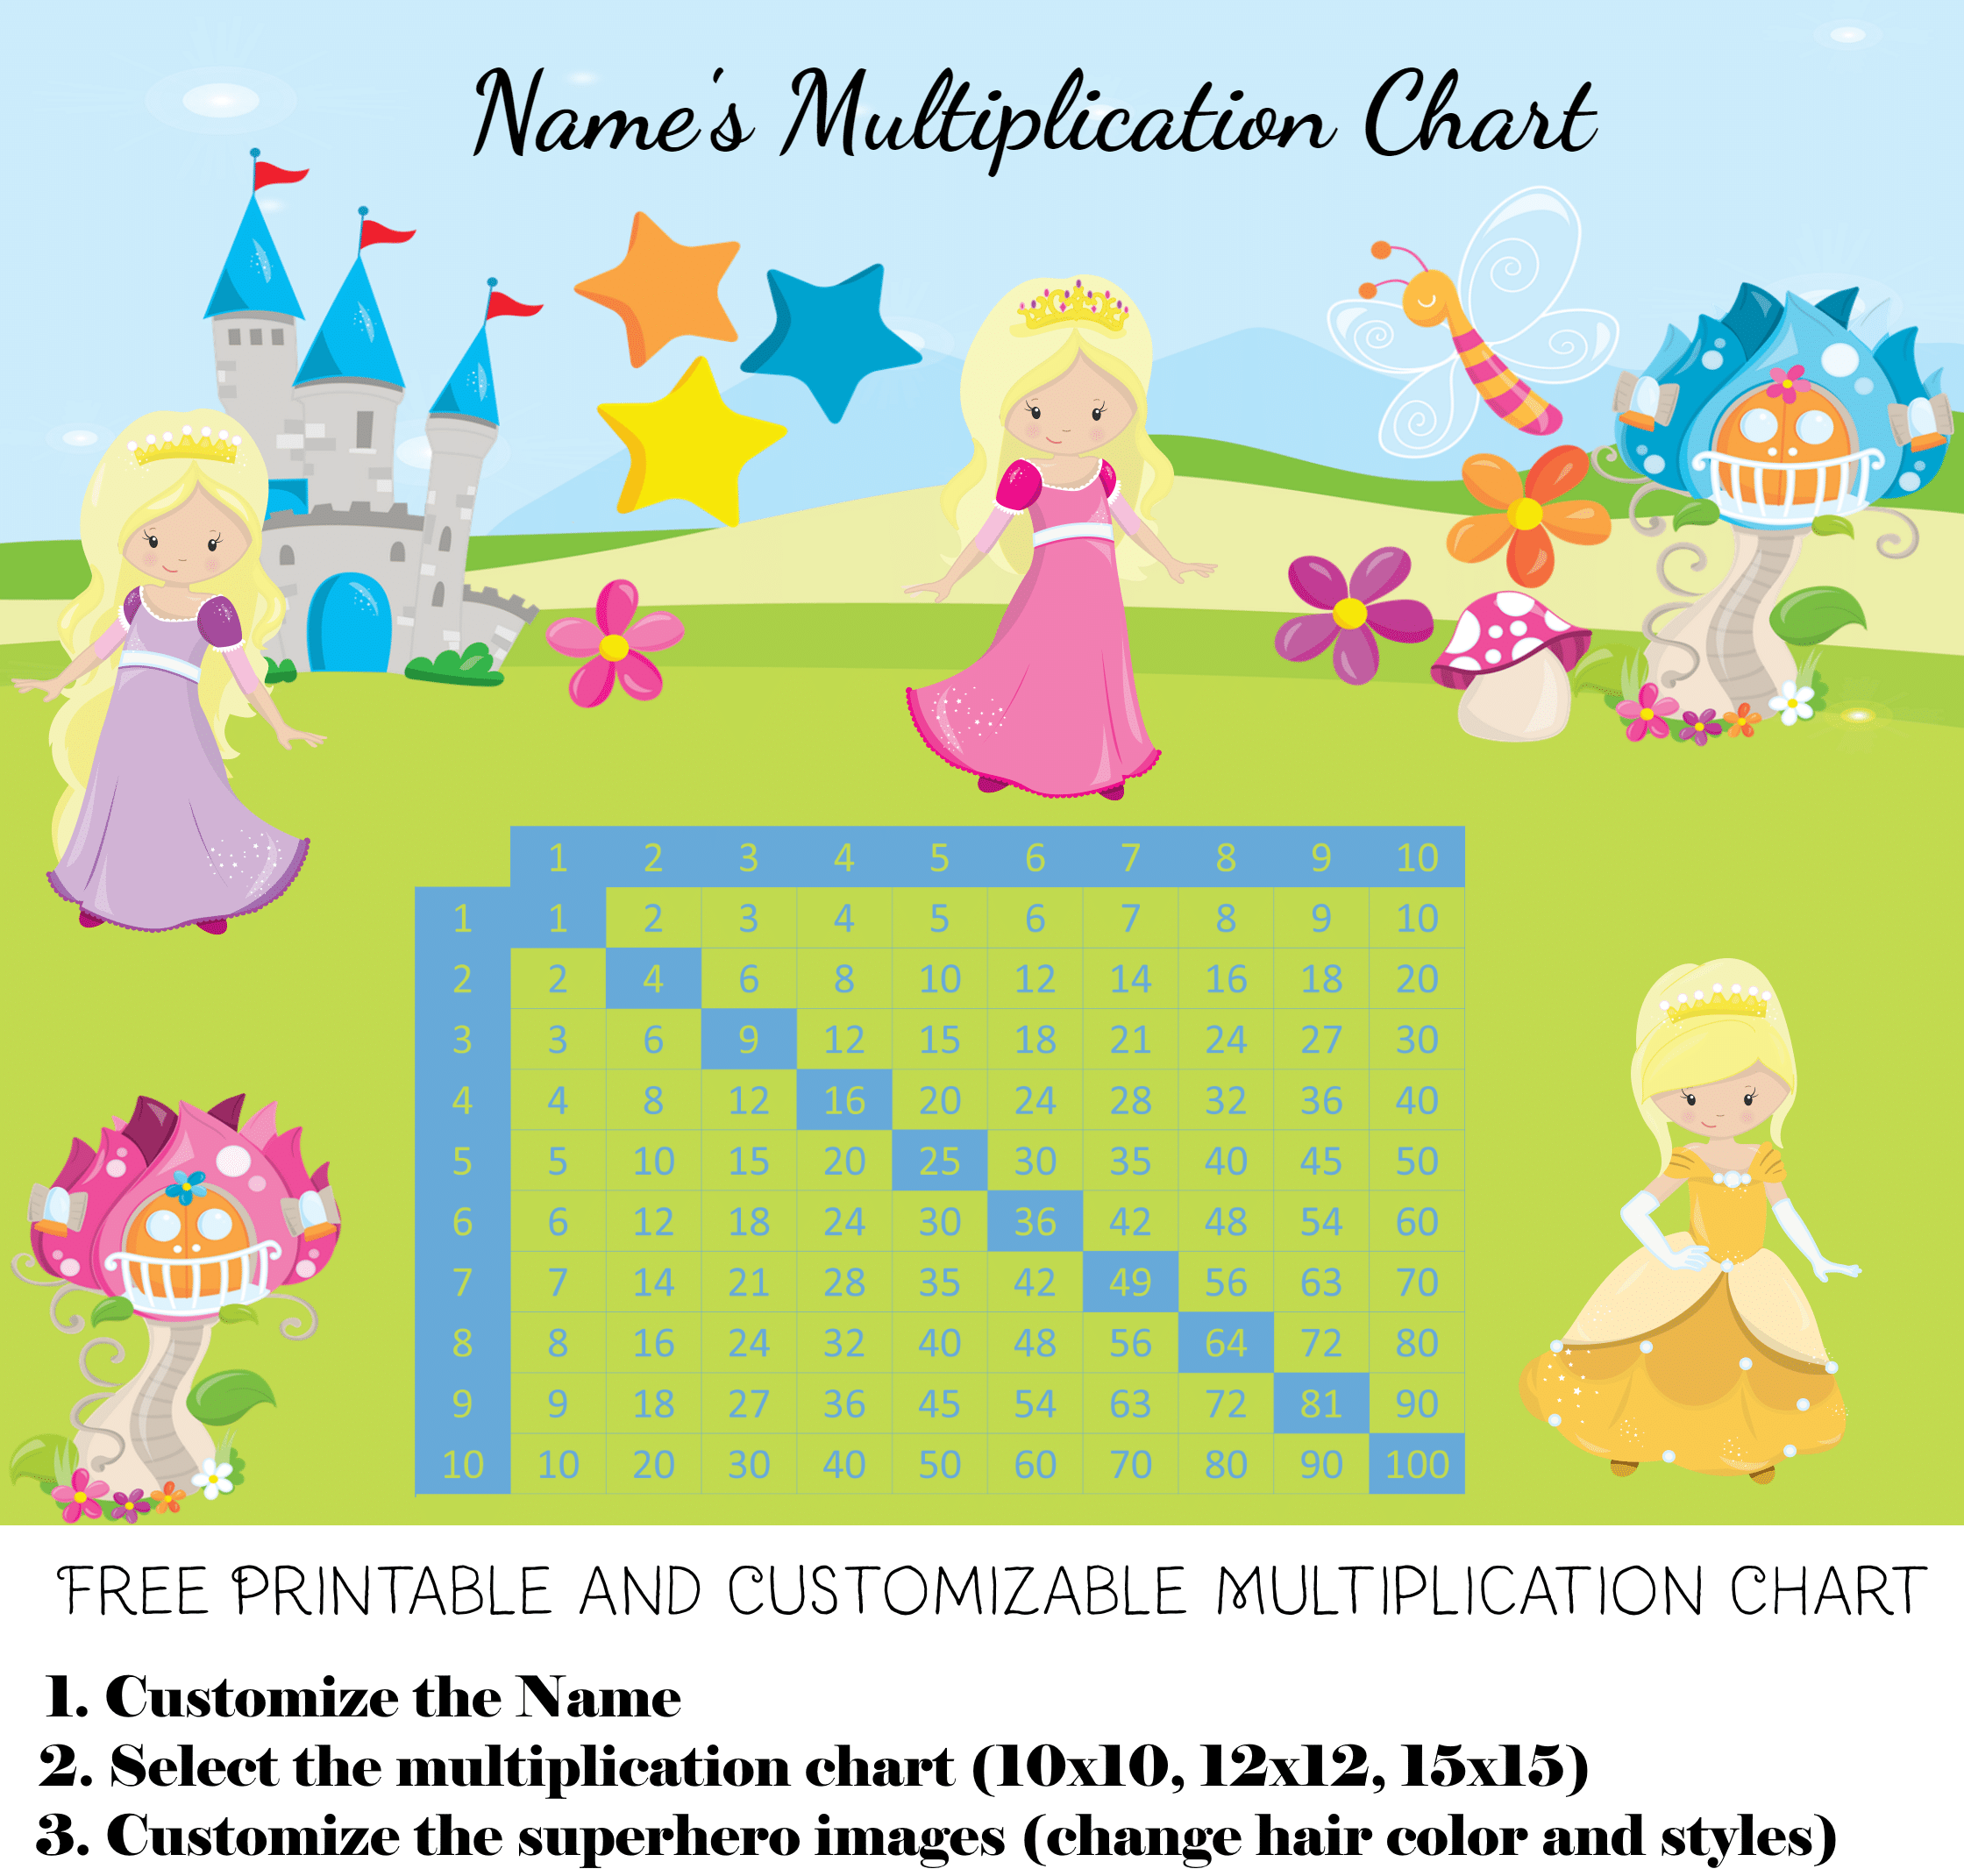 Free Custom Multiplication Chart Printable